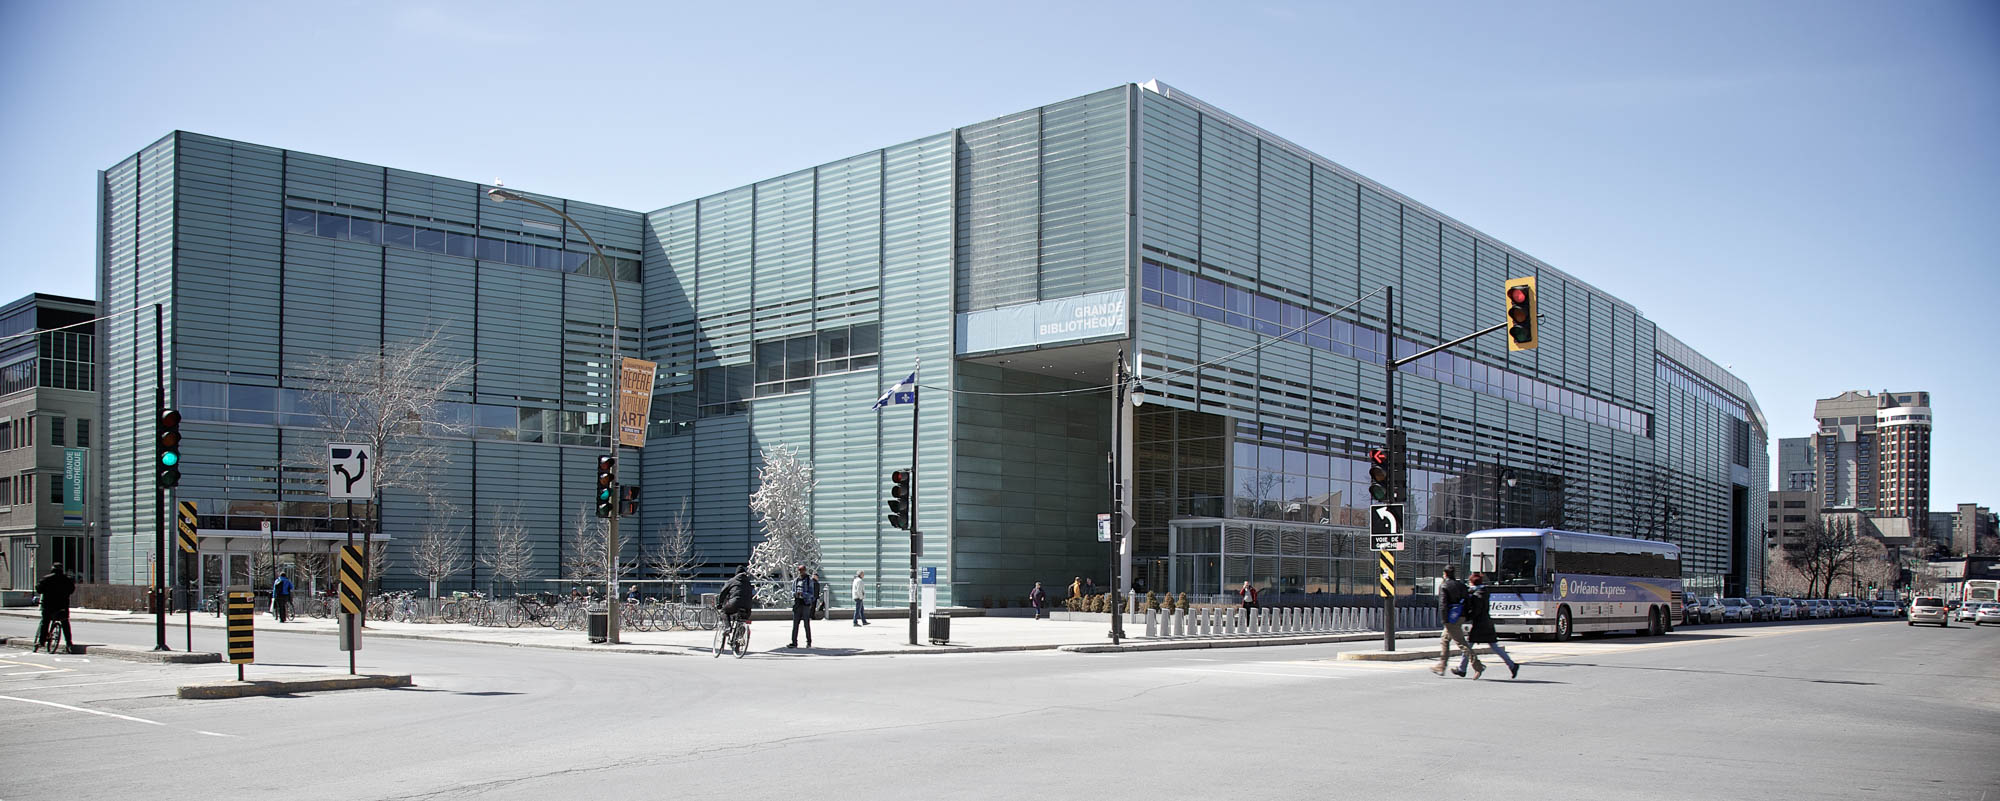 Panoramic image of the Québec National Library in Montréal.